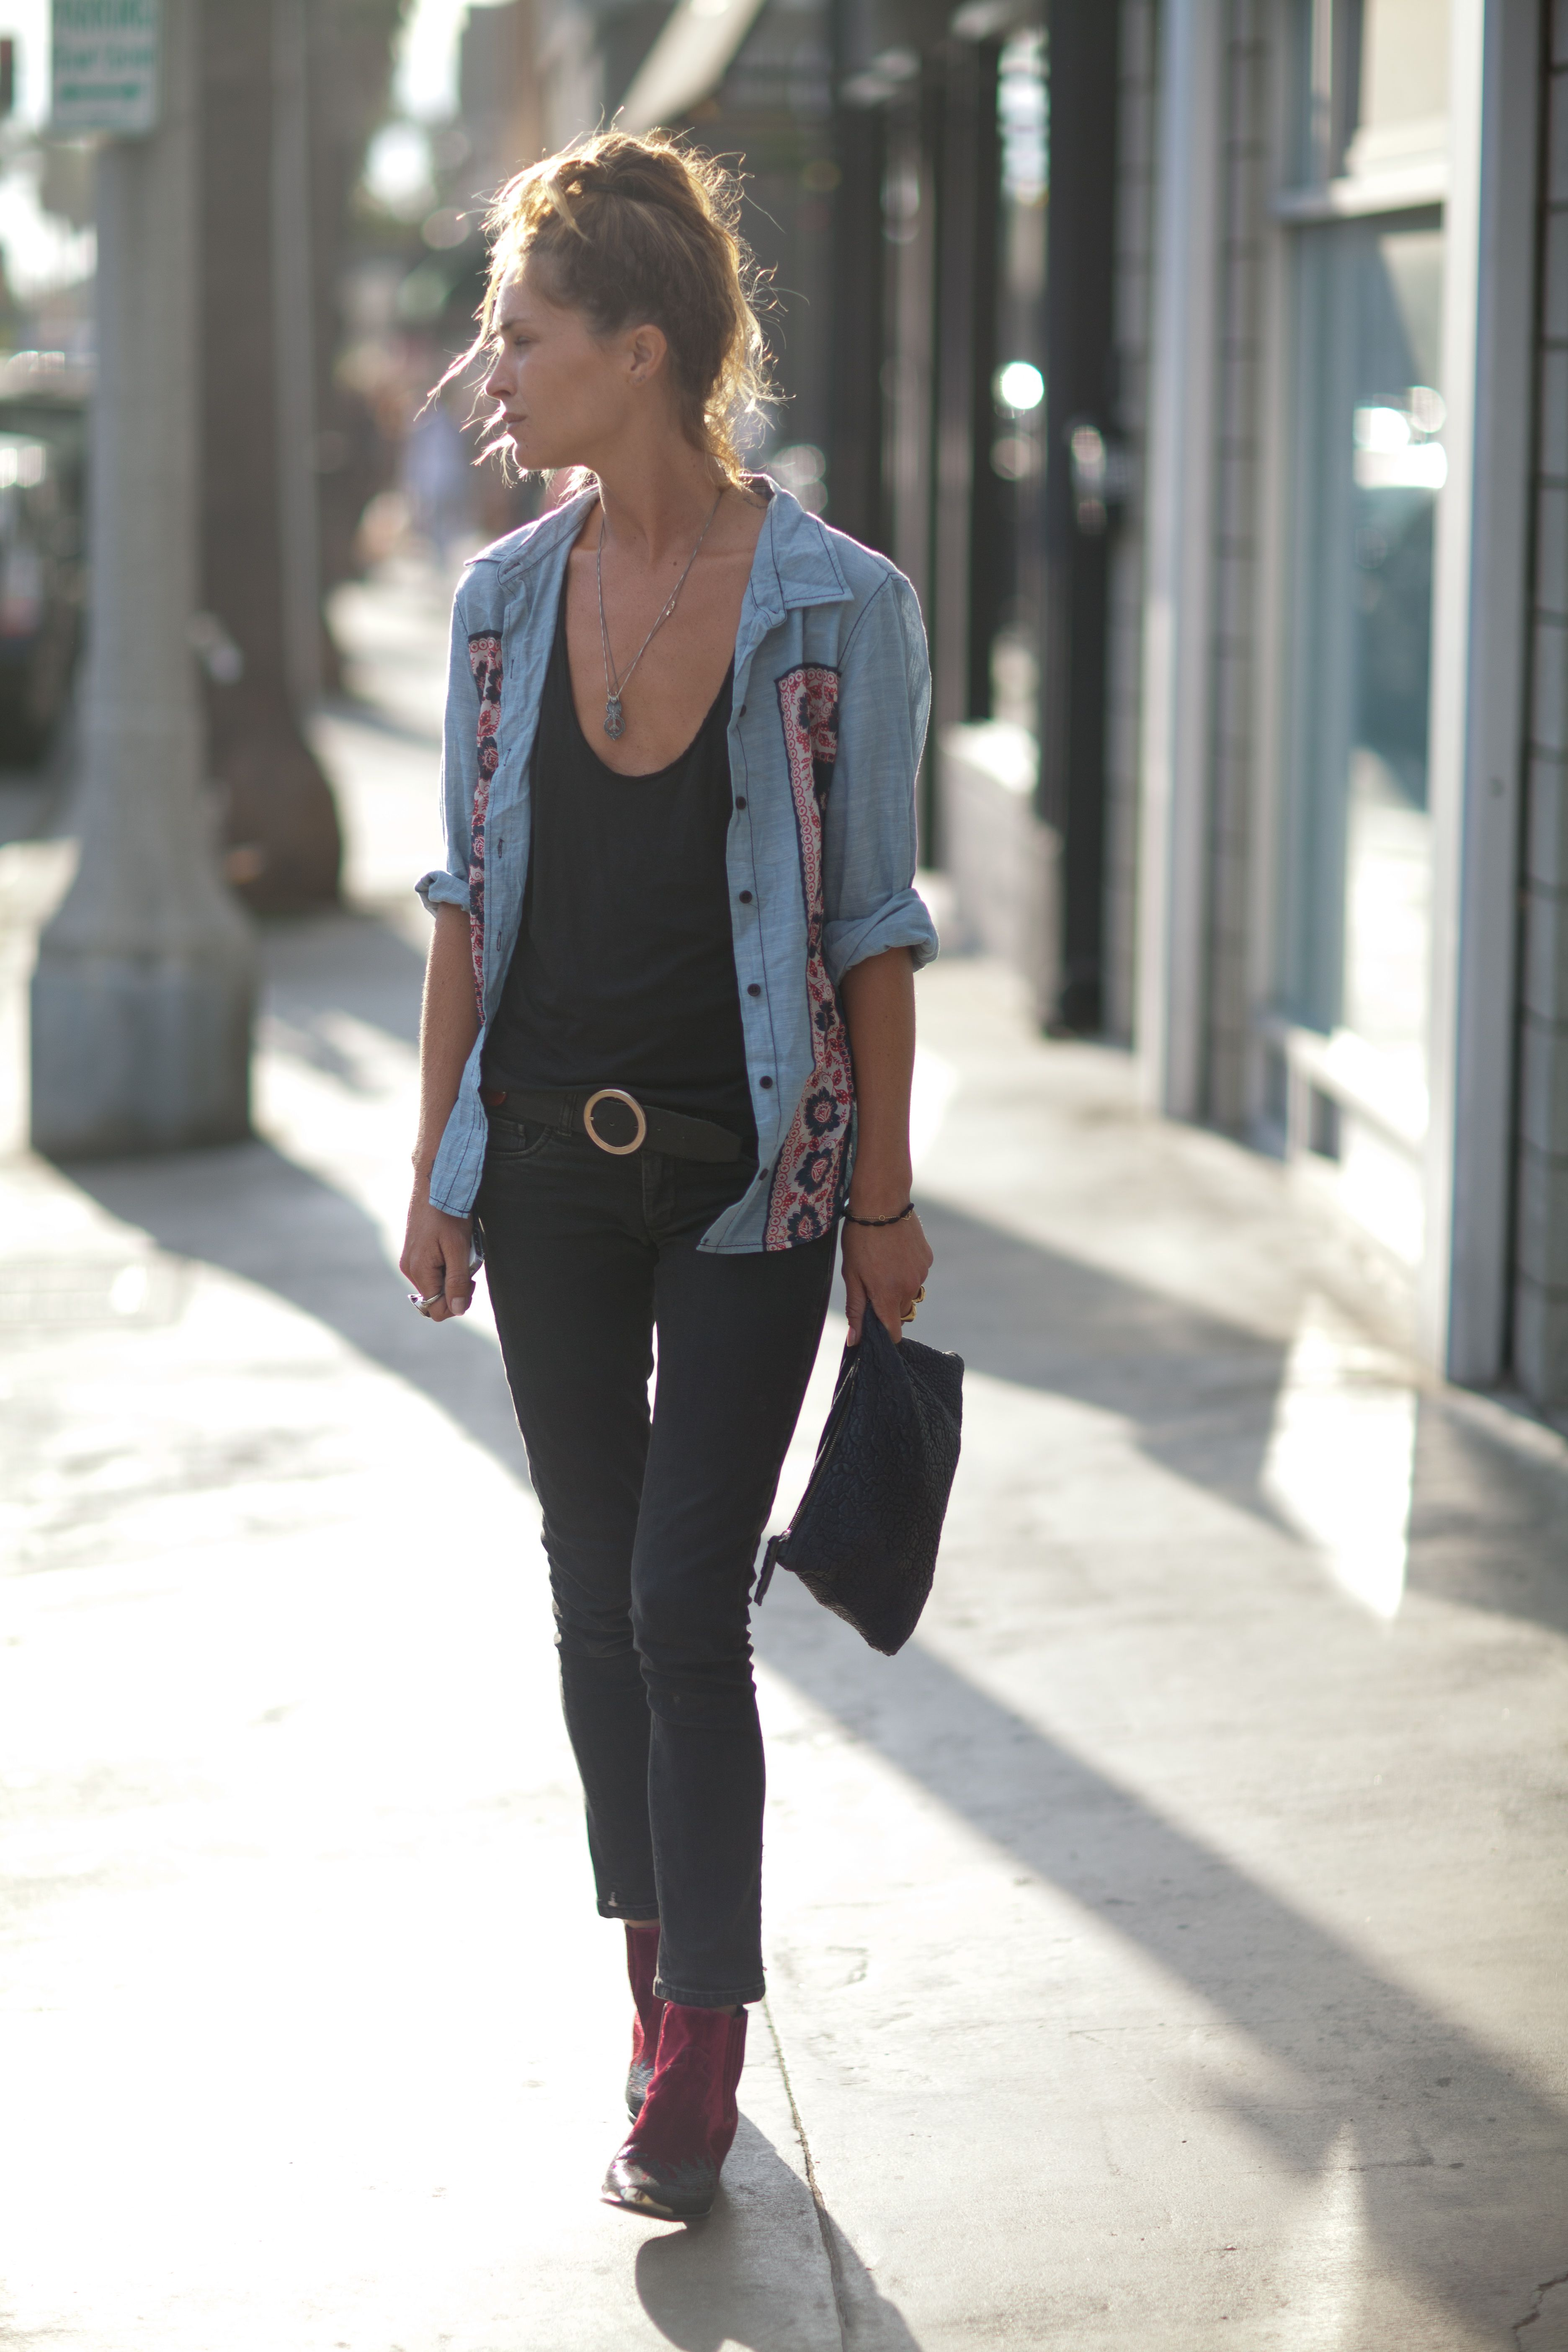 4747bcec8433 Relaxed look: ankle skinny jeans, basic tee shirt, open shirt, cowboy  boots. By Erin Wasson #Streetstyle.